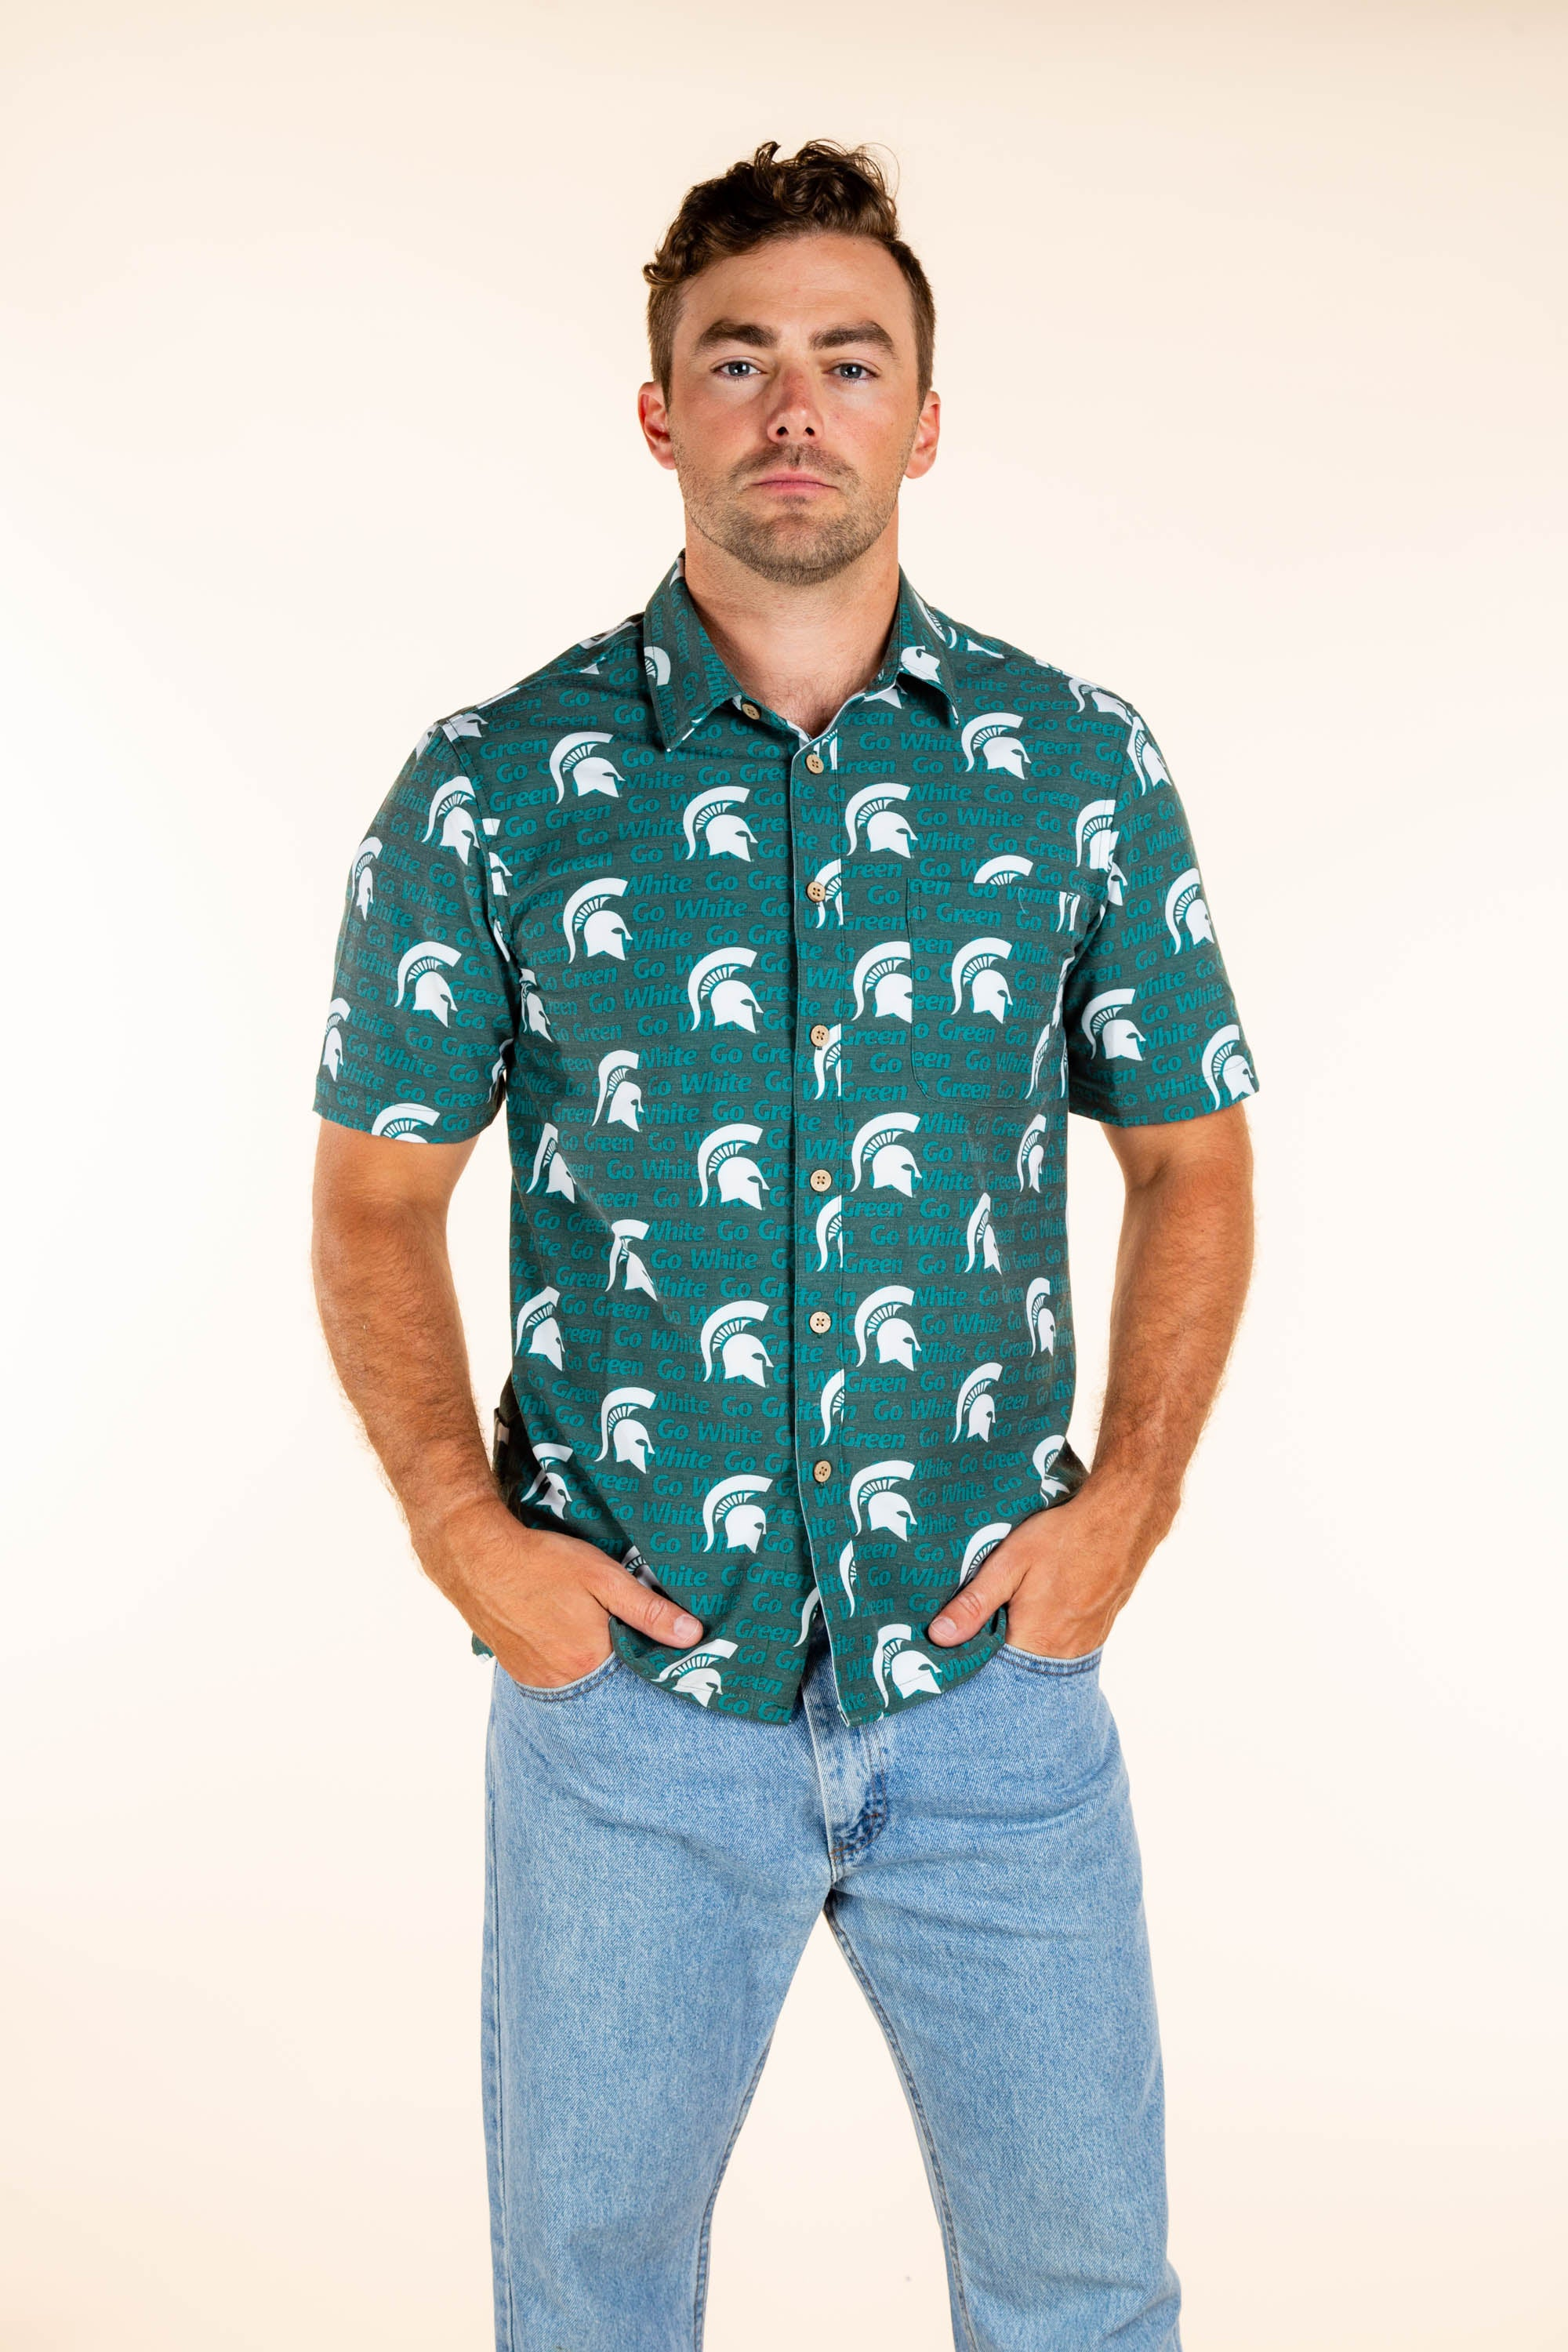 Men's Michigan State Tailgating Shirt